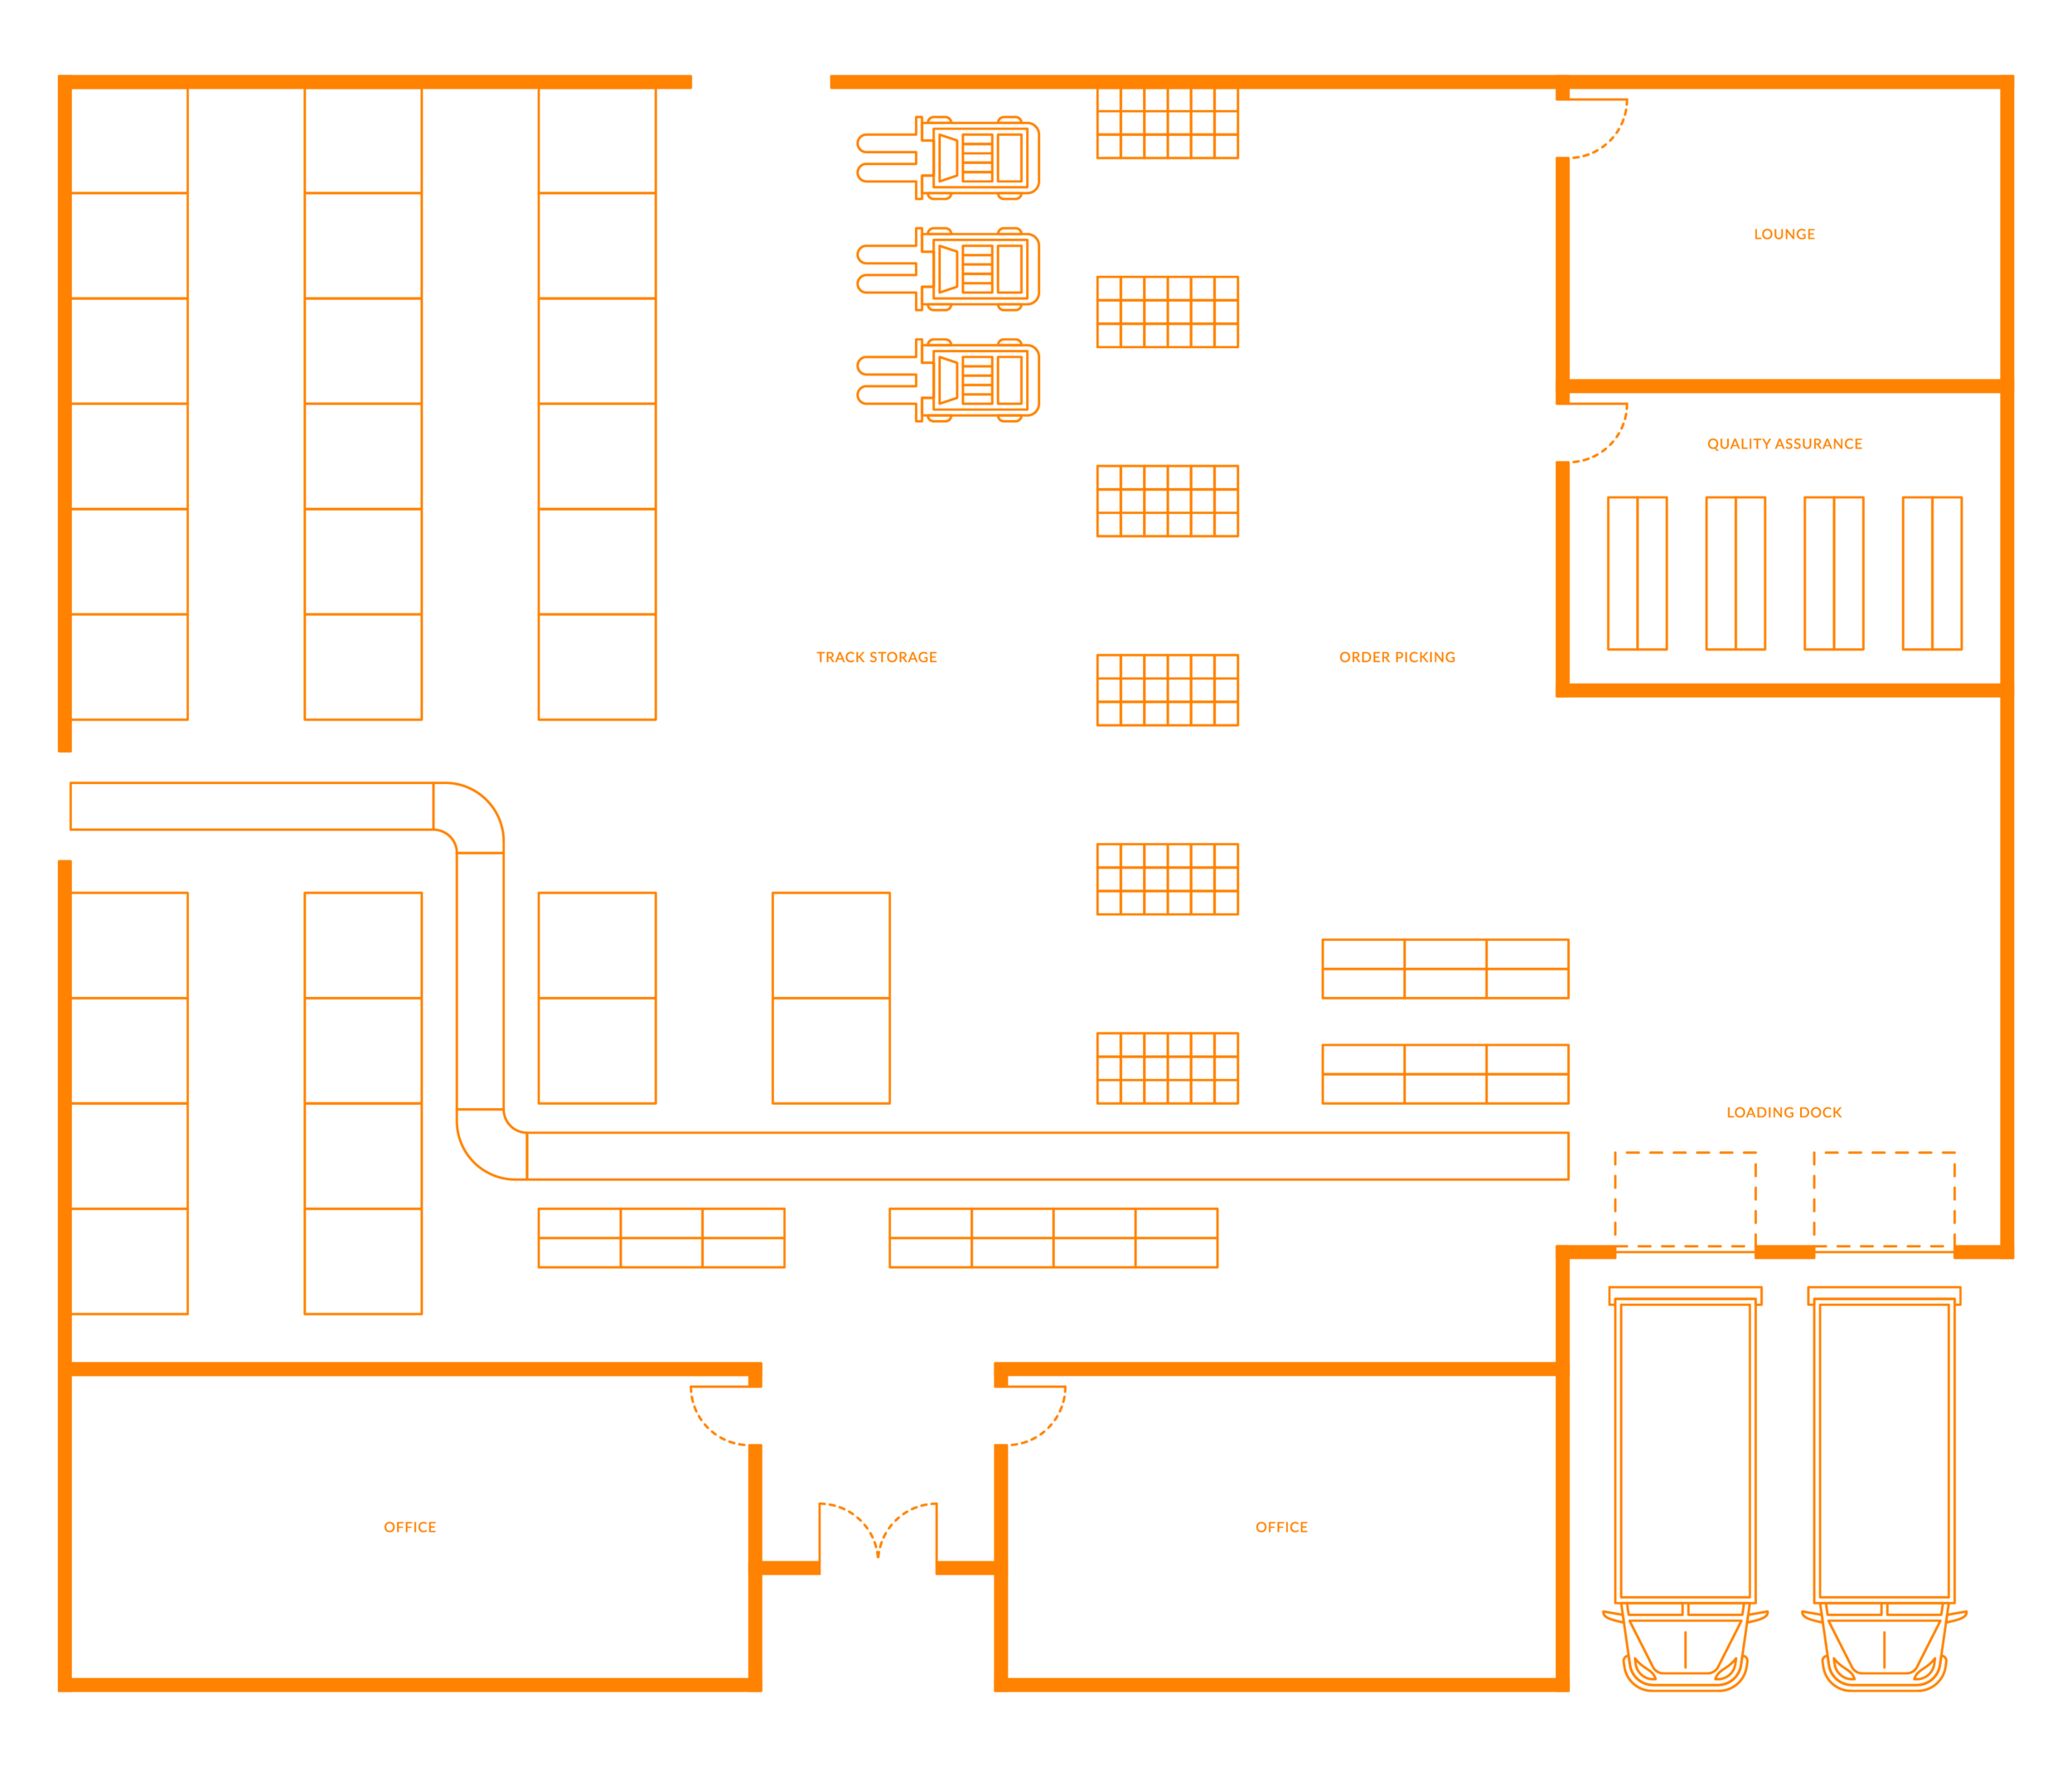 180416_claire_map_layout_tracings_warehouse-01.png